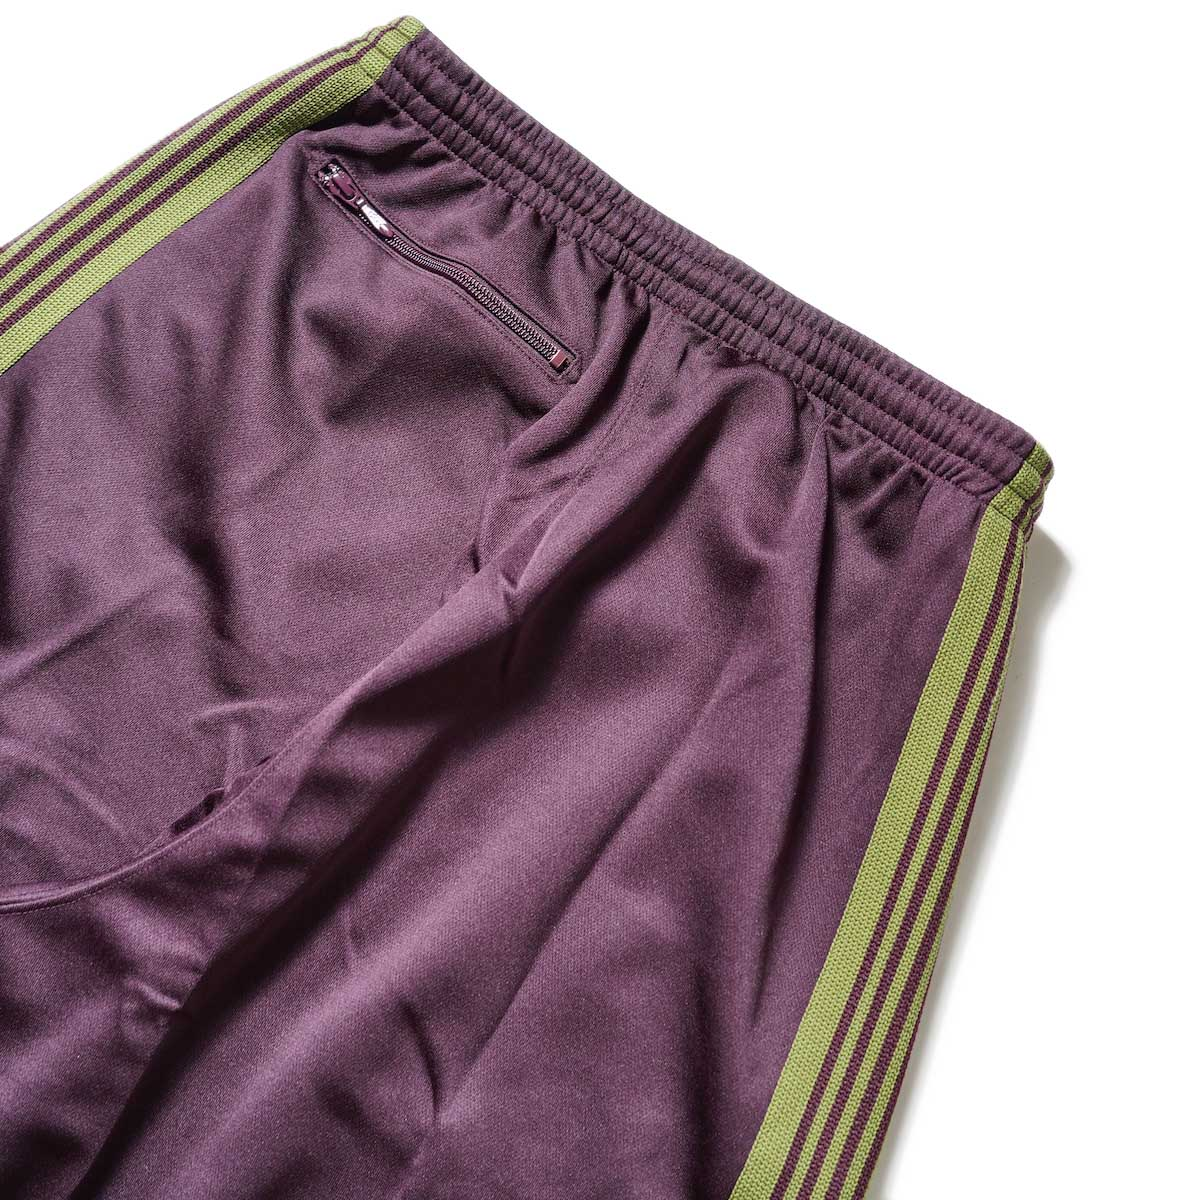 Needles / H.D. Track Pant -PolySmooth (Maroon)ヒップポケット